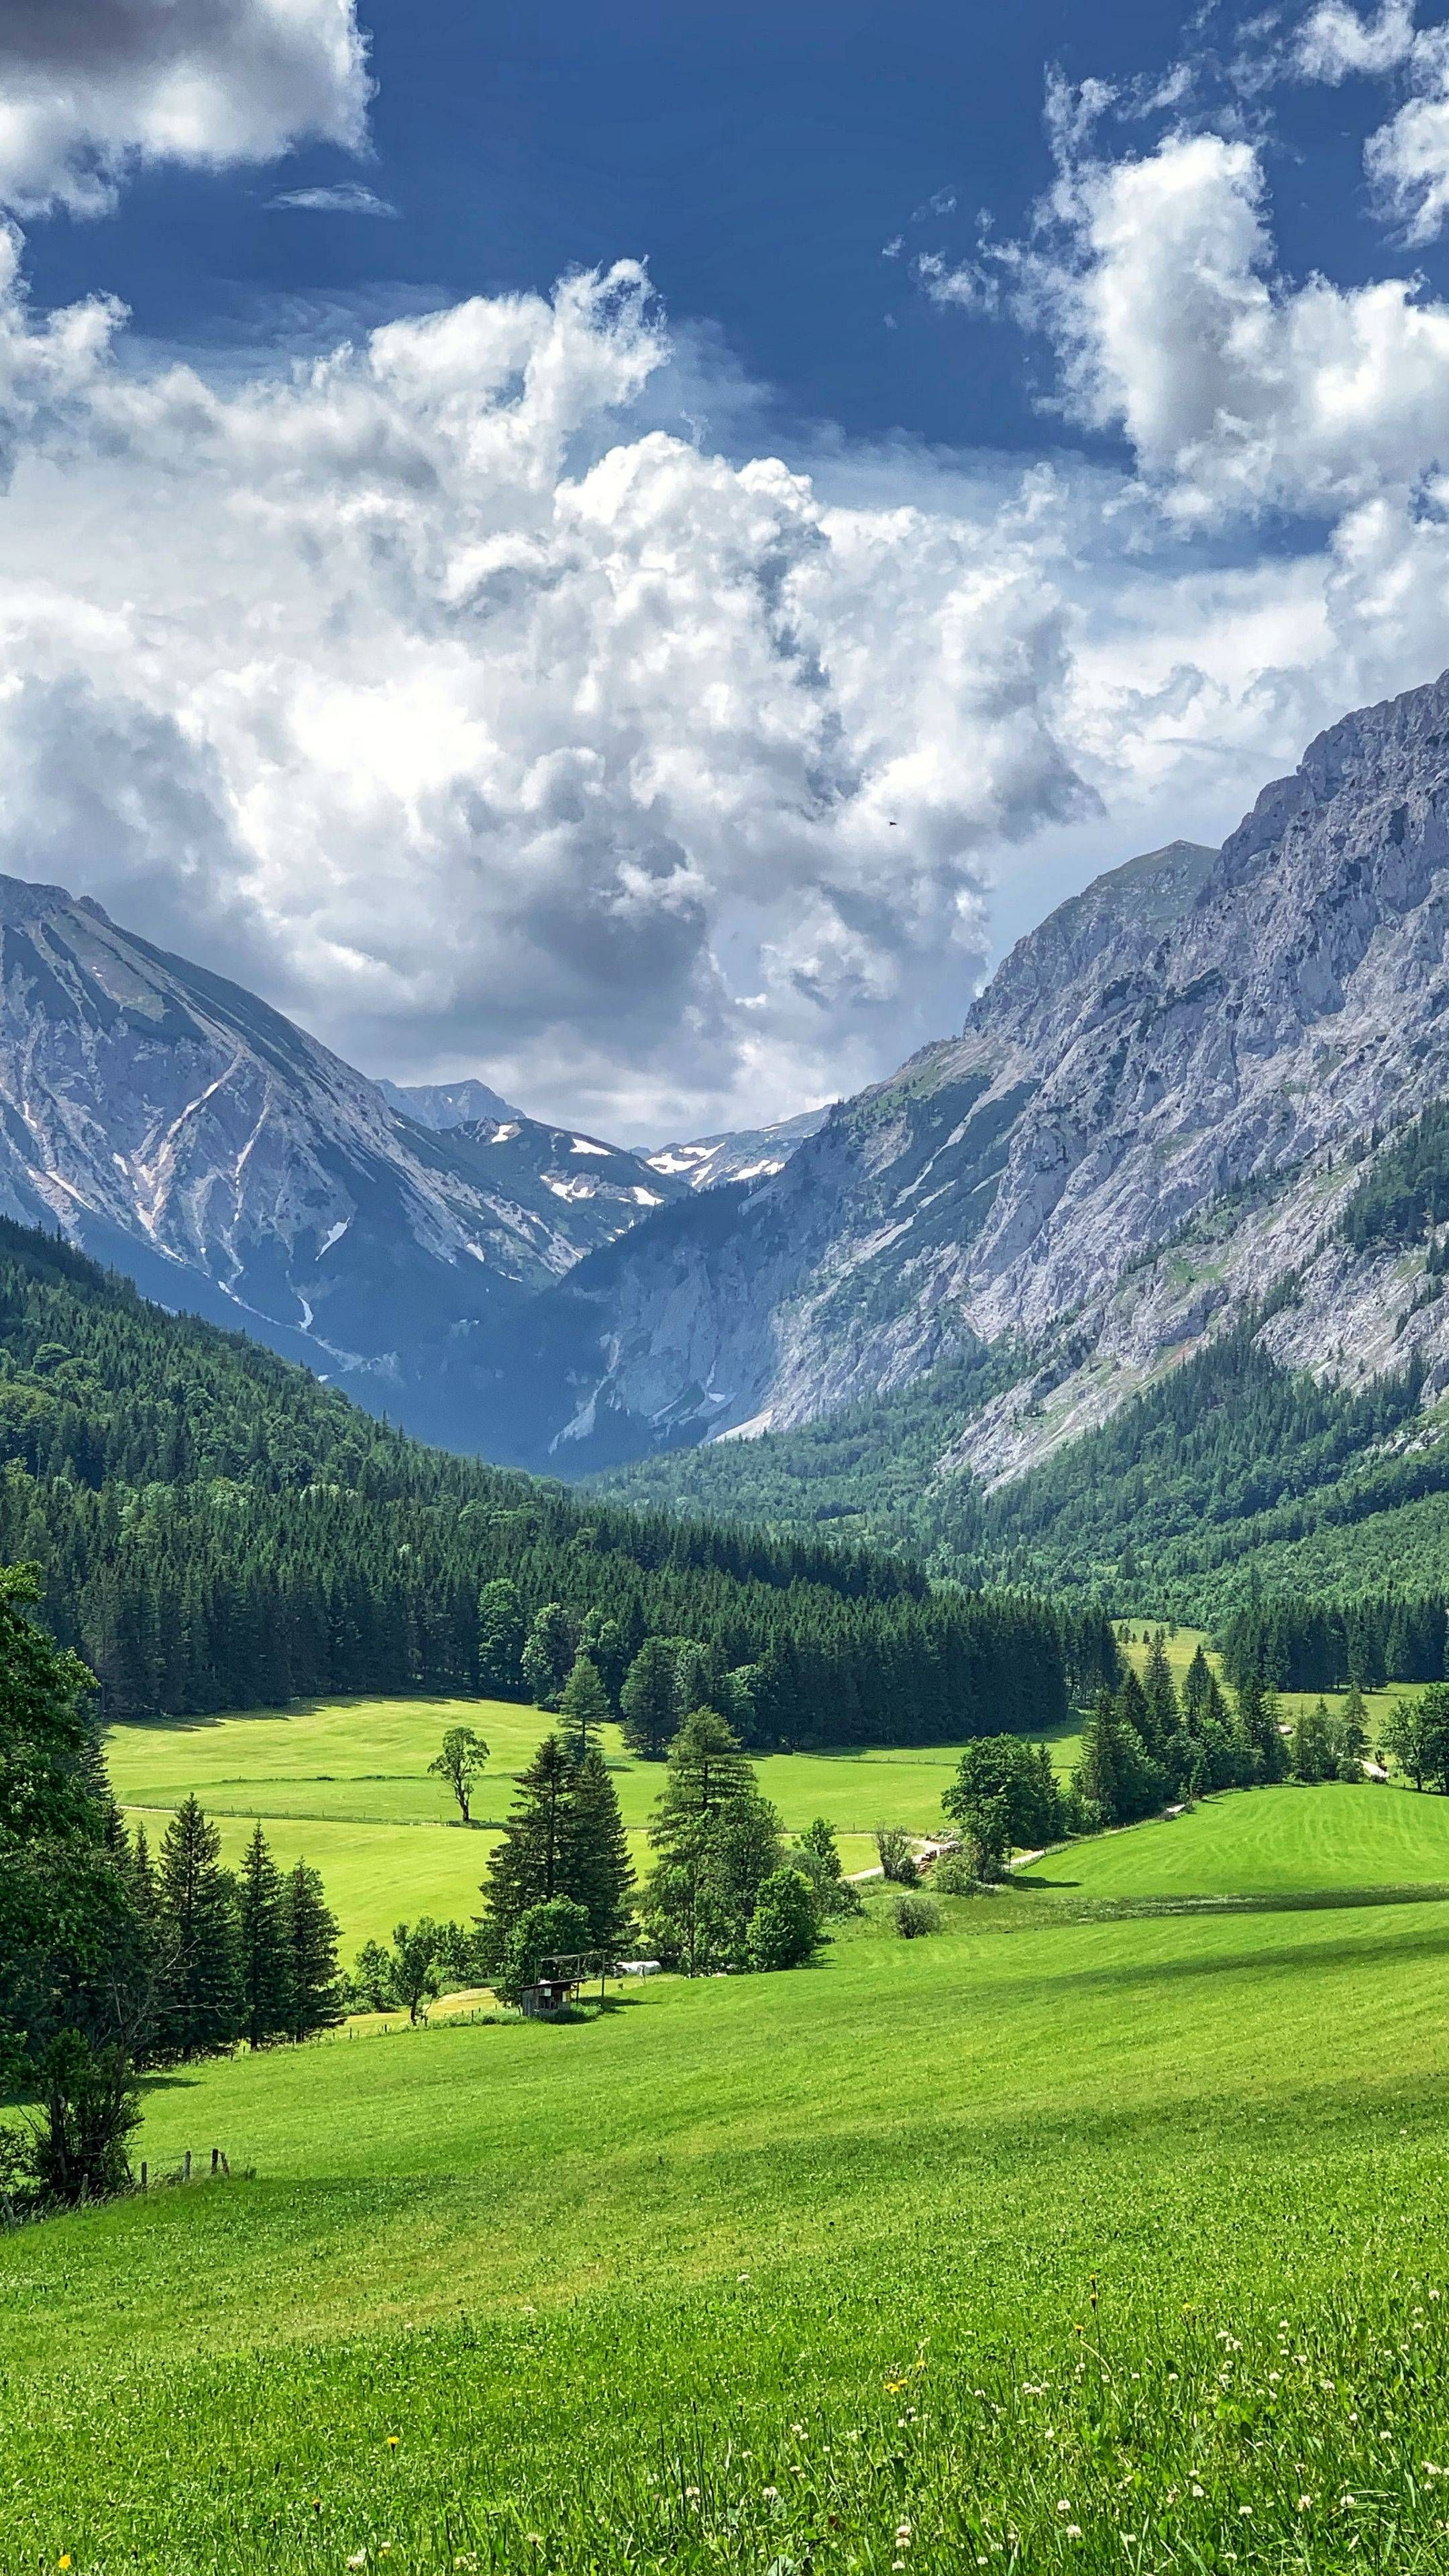 The latest iPhone11, iPhone11 Pro, iPhone 11 Pro Max mobile phone HD wallpapers free download, mountains, valley, trees, grass, landscape, green